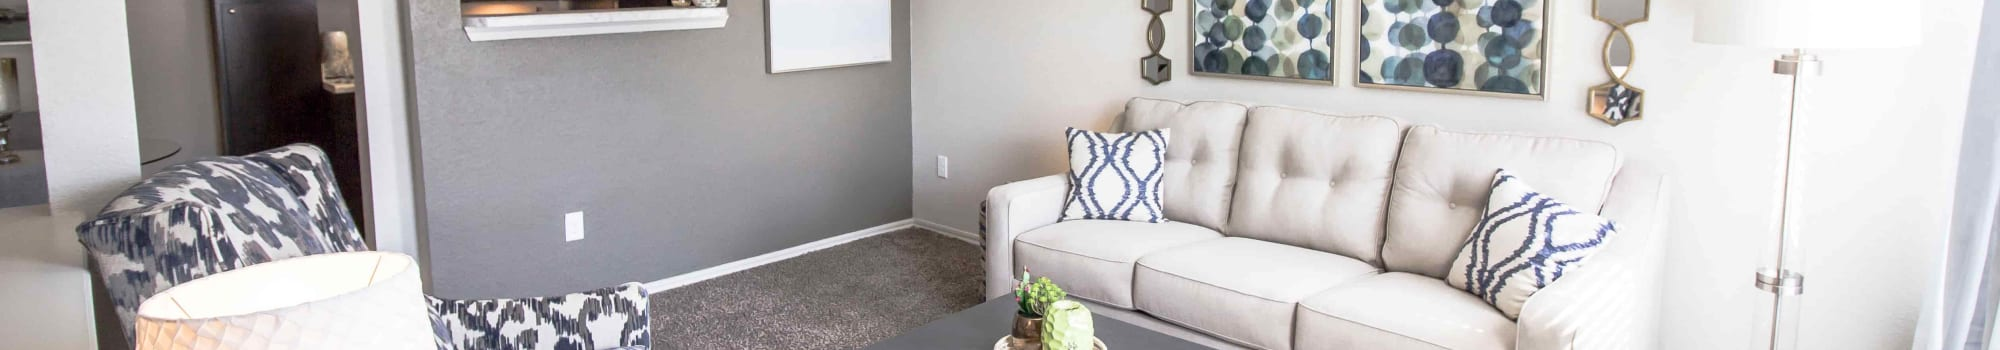 Pet-friendly apartments at Legacy Trail in Norman, Oklahoma